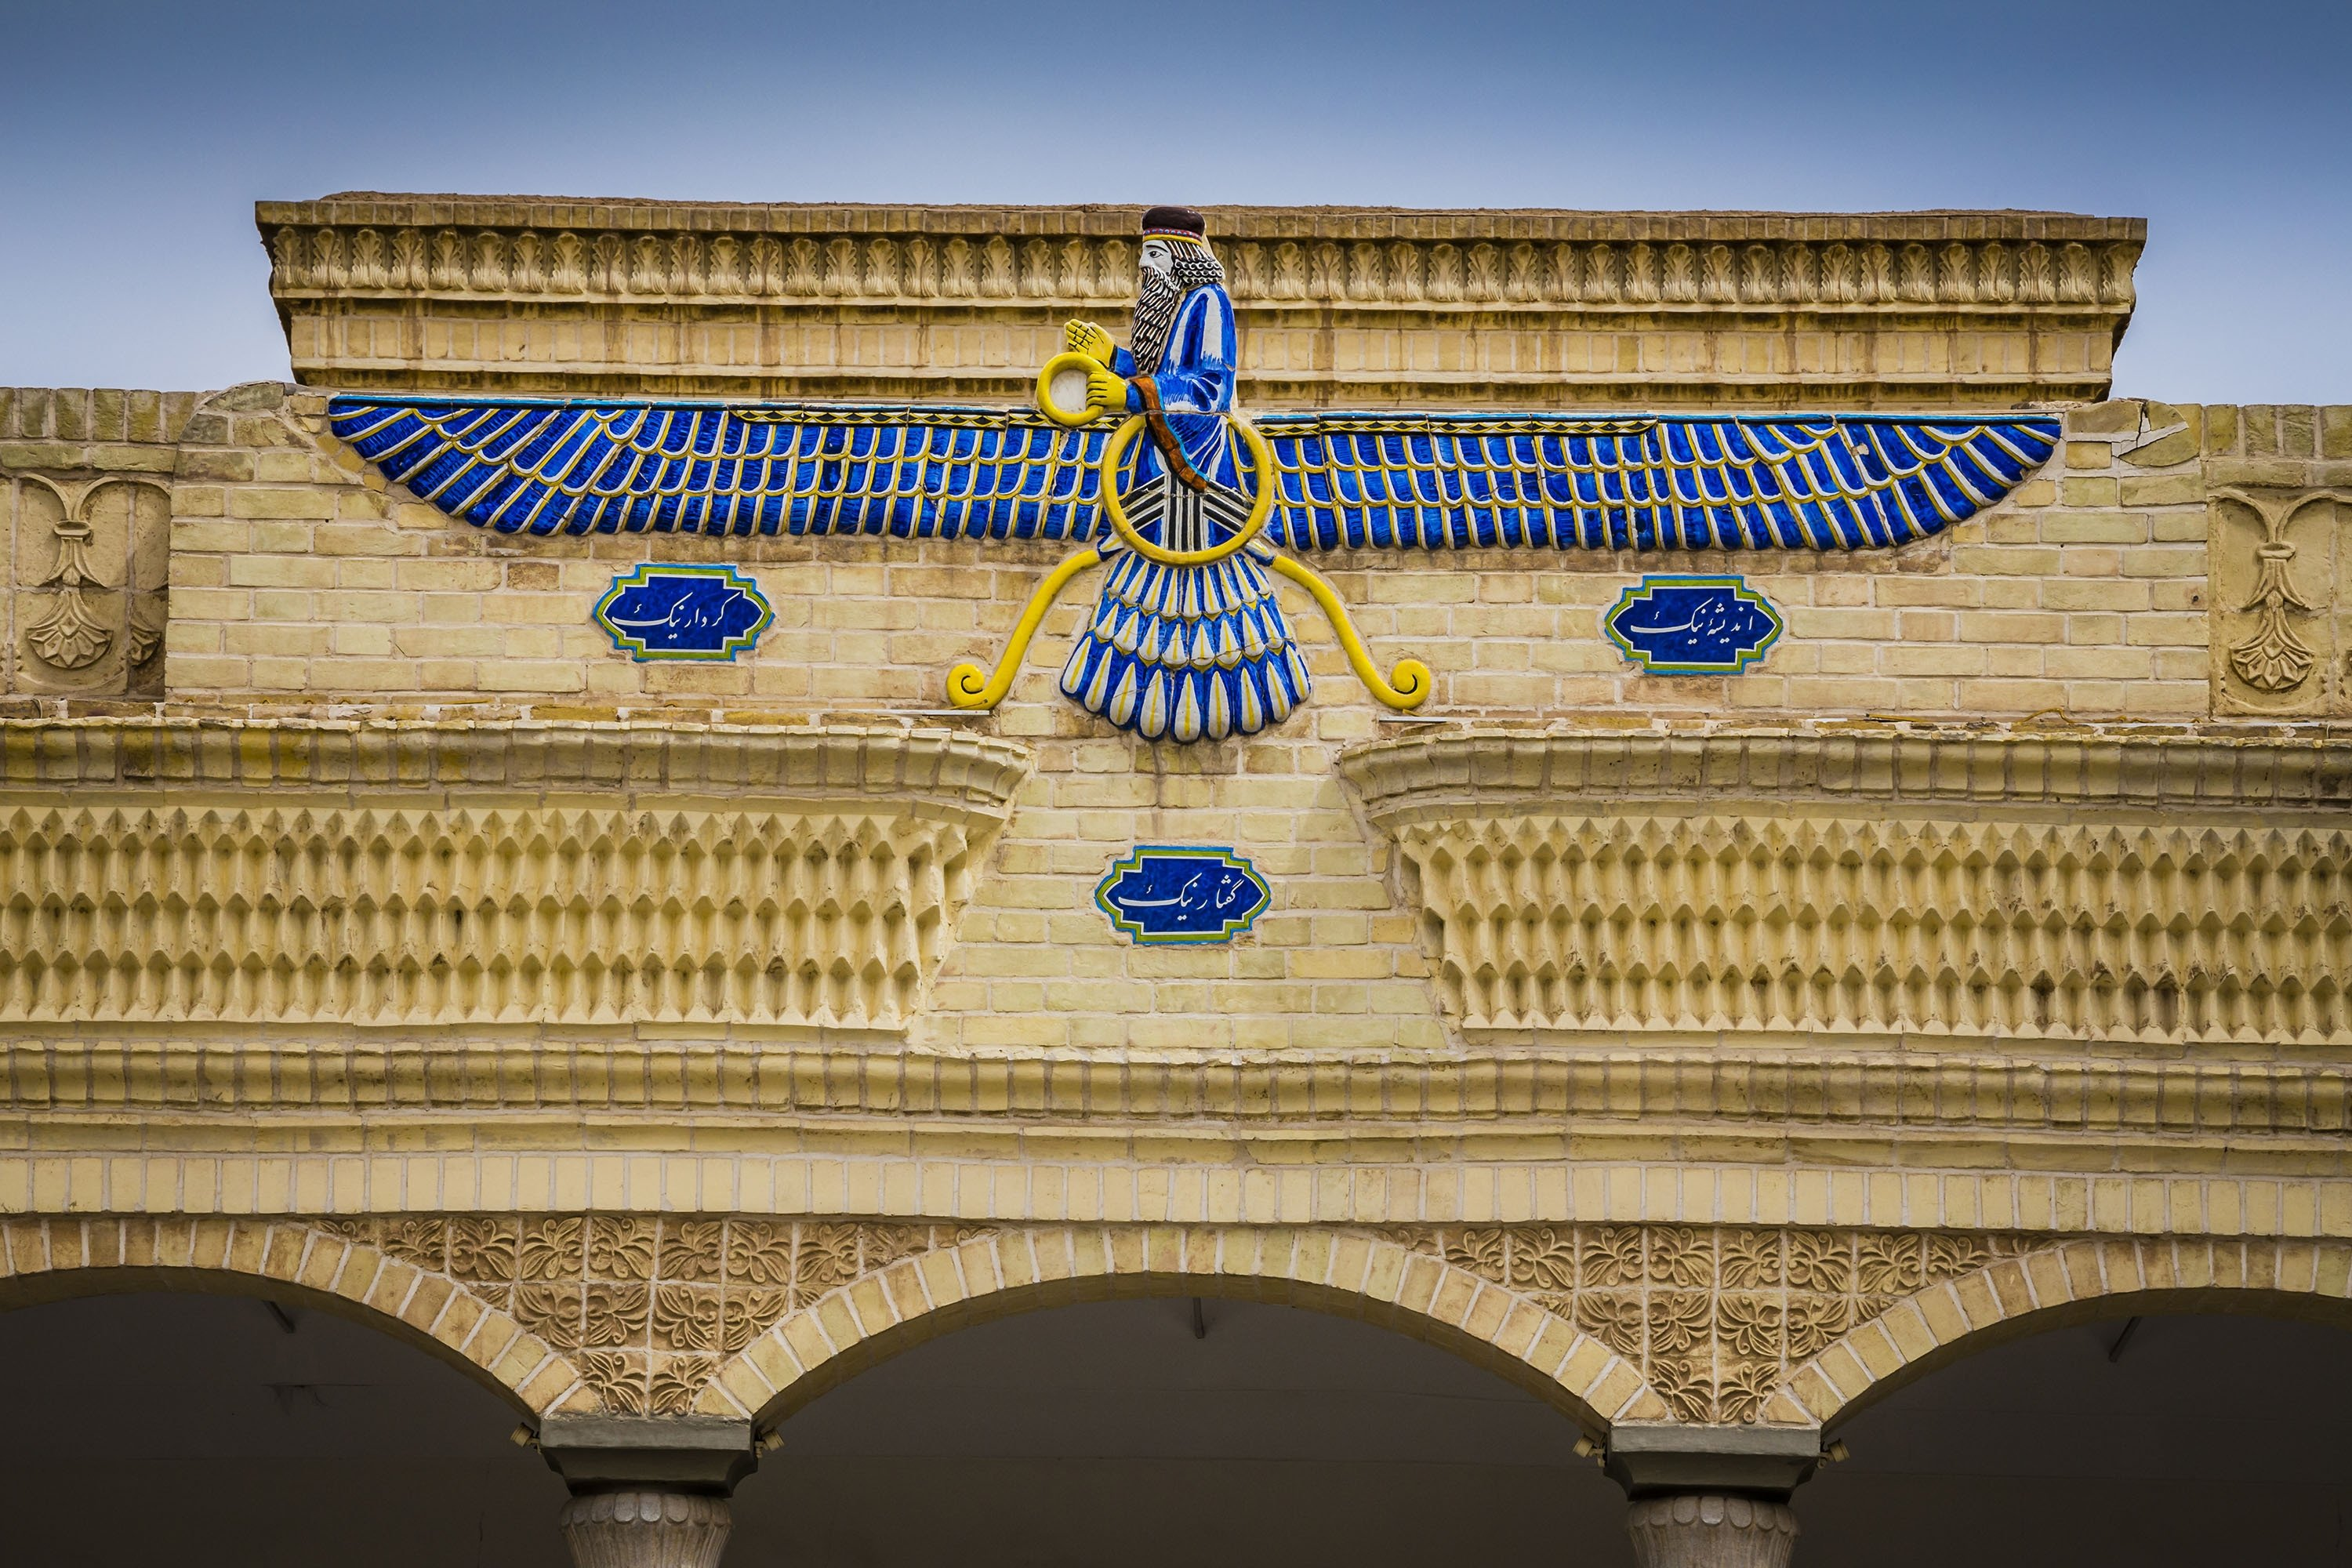 The Faravahar, one of the most well-known symbols of Zoroastrianism, an Iranian religion, can be seen on a historical building in Yazd, Iran. (Shutterstock Photo)